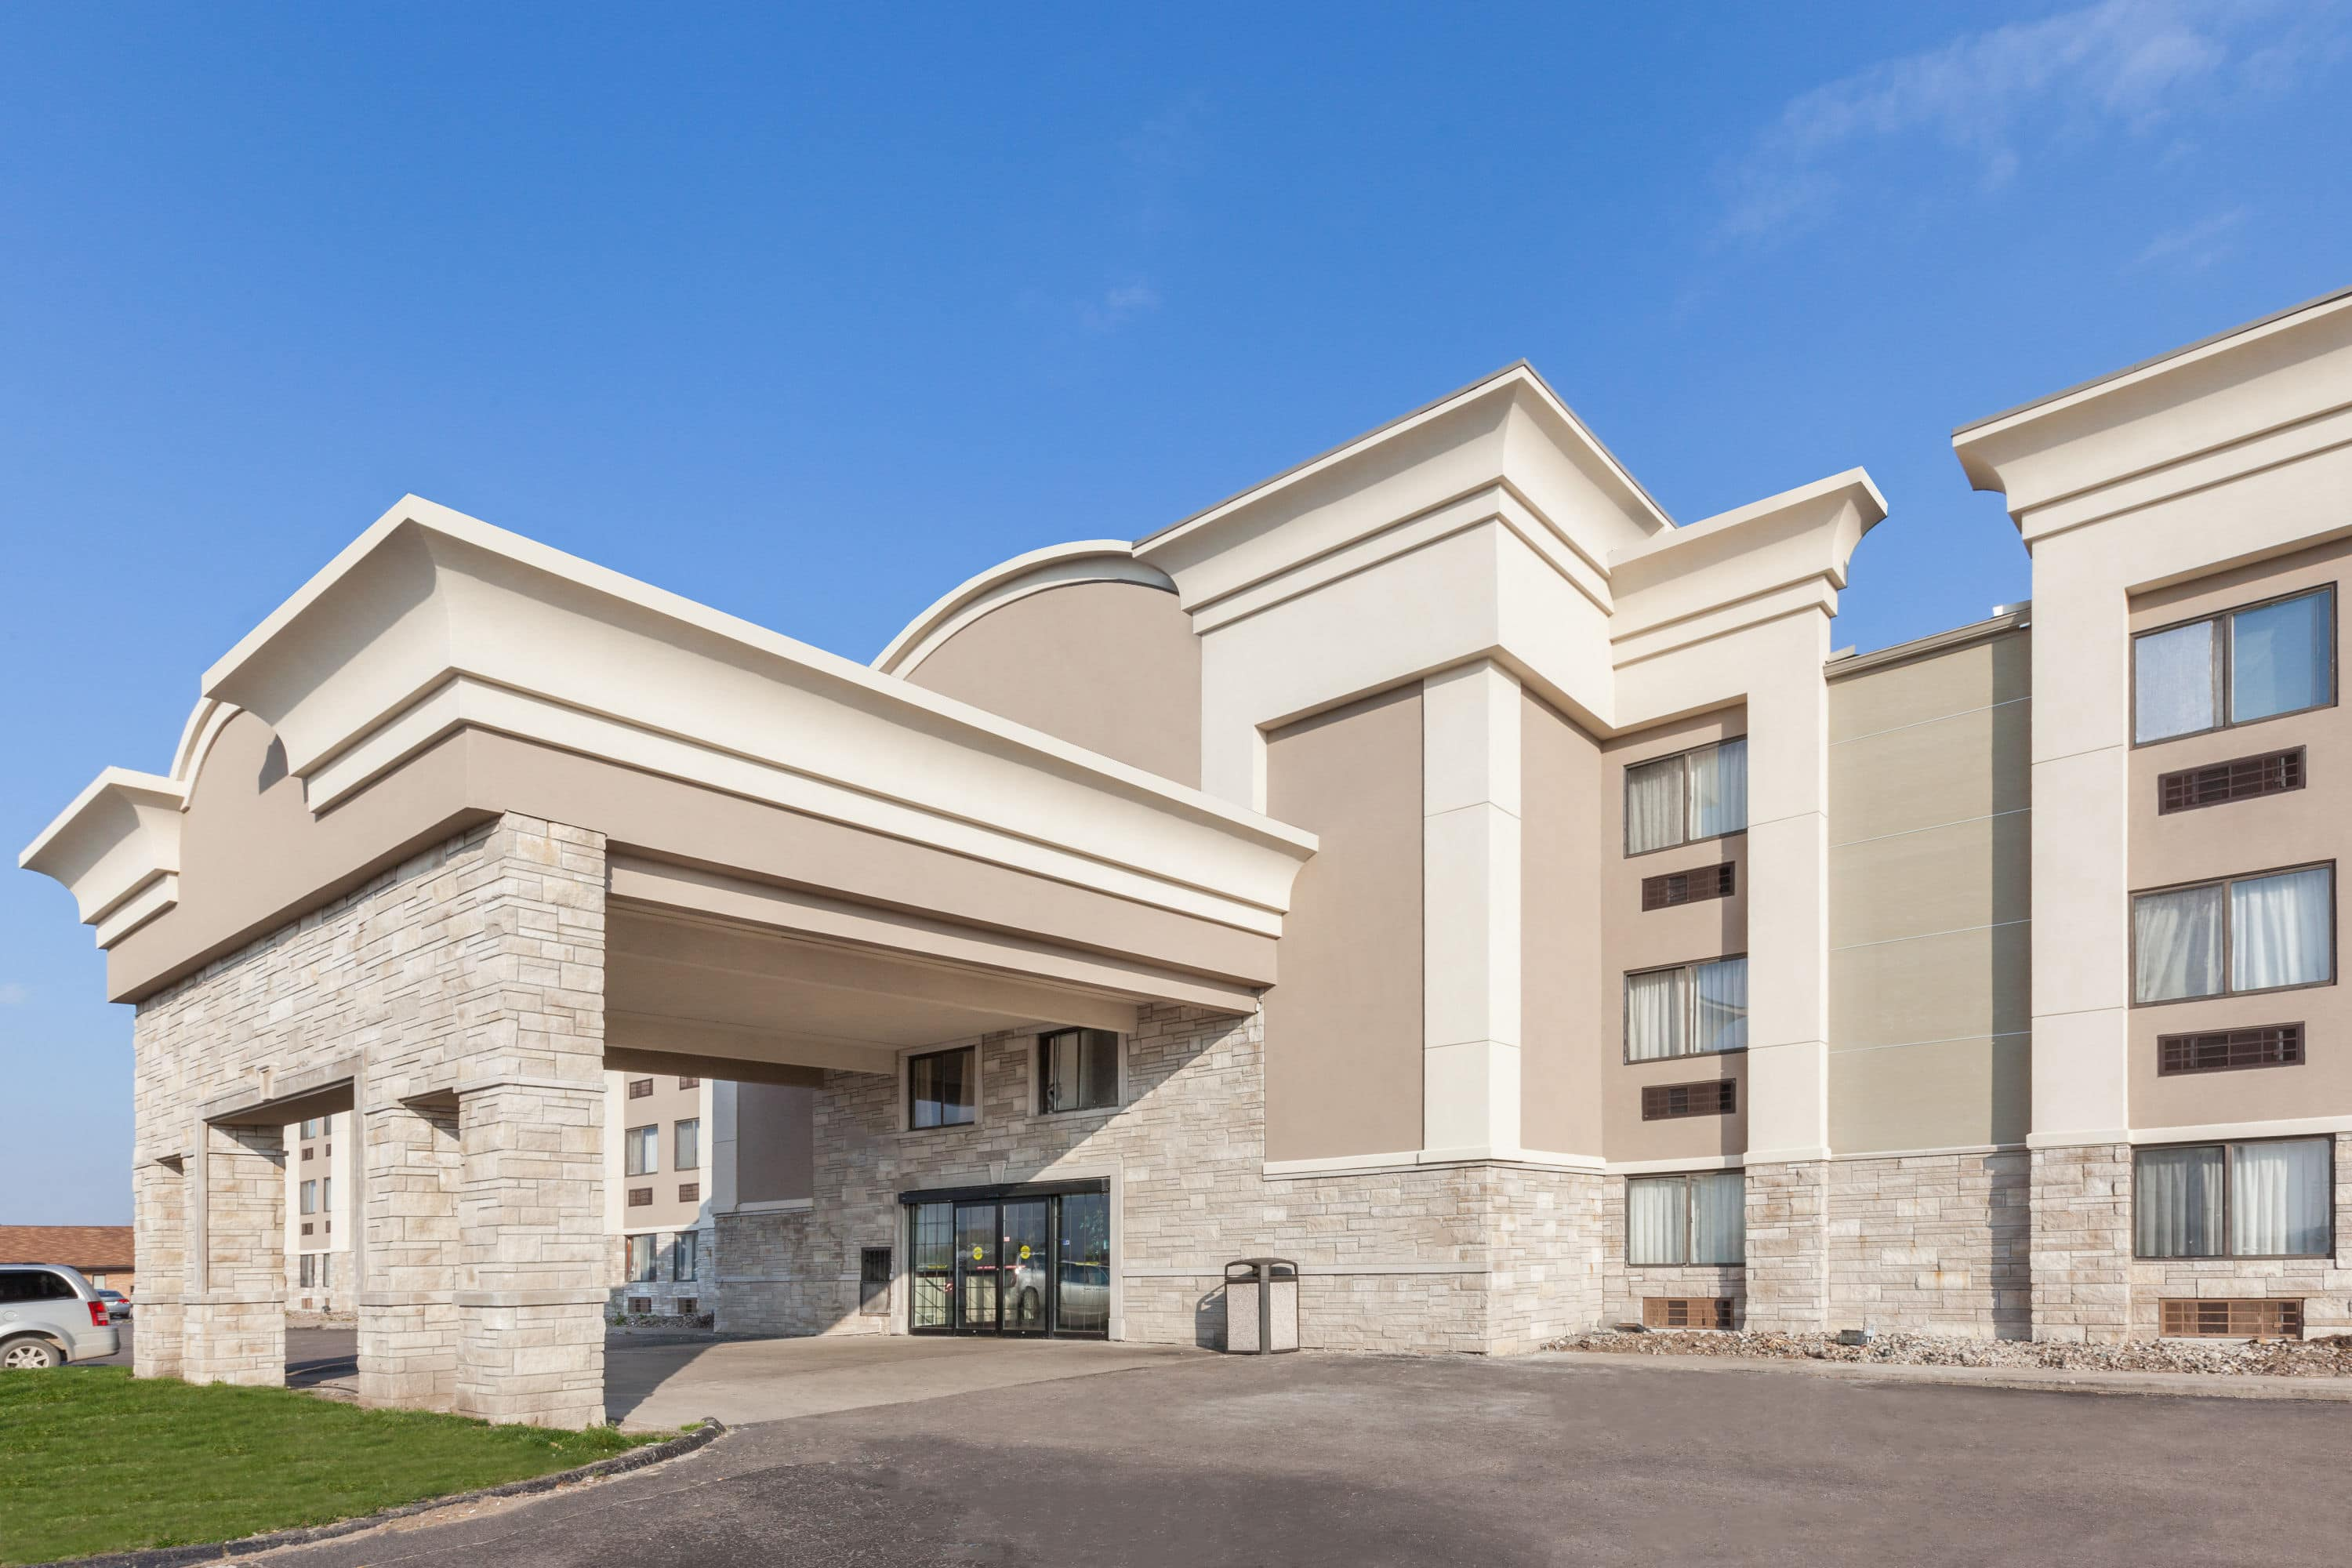 Hotels Near Dtw Airport Fabulous View Photos With